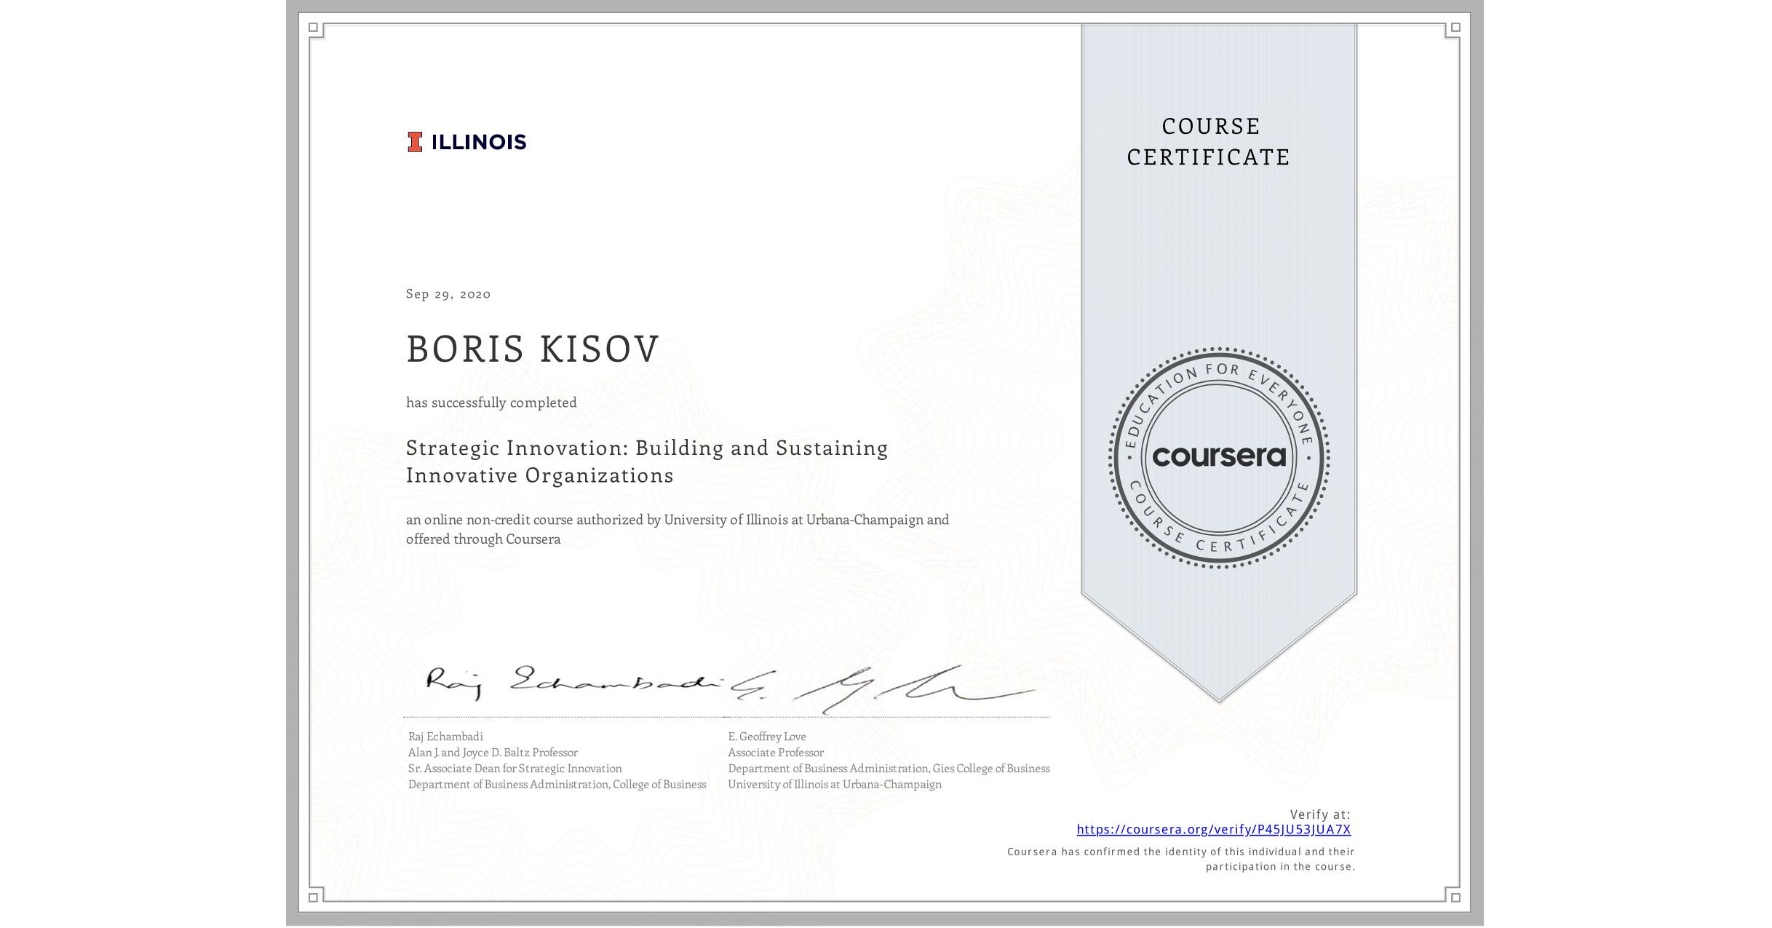 View certificate for BORIS KISOV, Strategic Innovation: Building and Sustaining Innovative Organizations, an online non-credit course authorized by University of Illinois at Urbana-Champaign and offered through Coursera